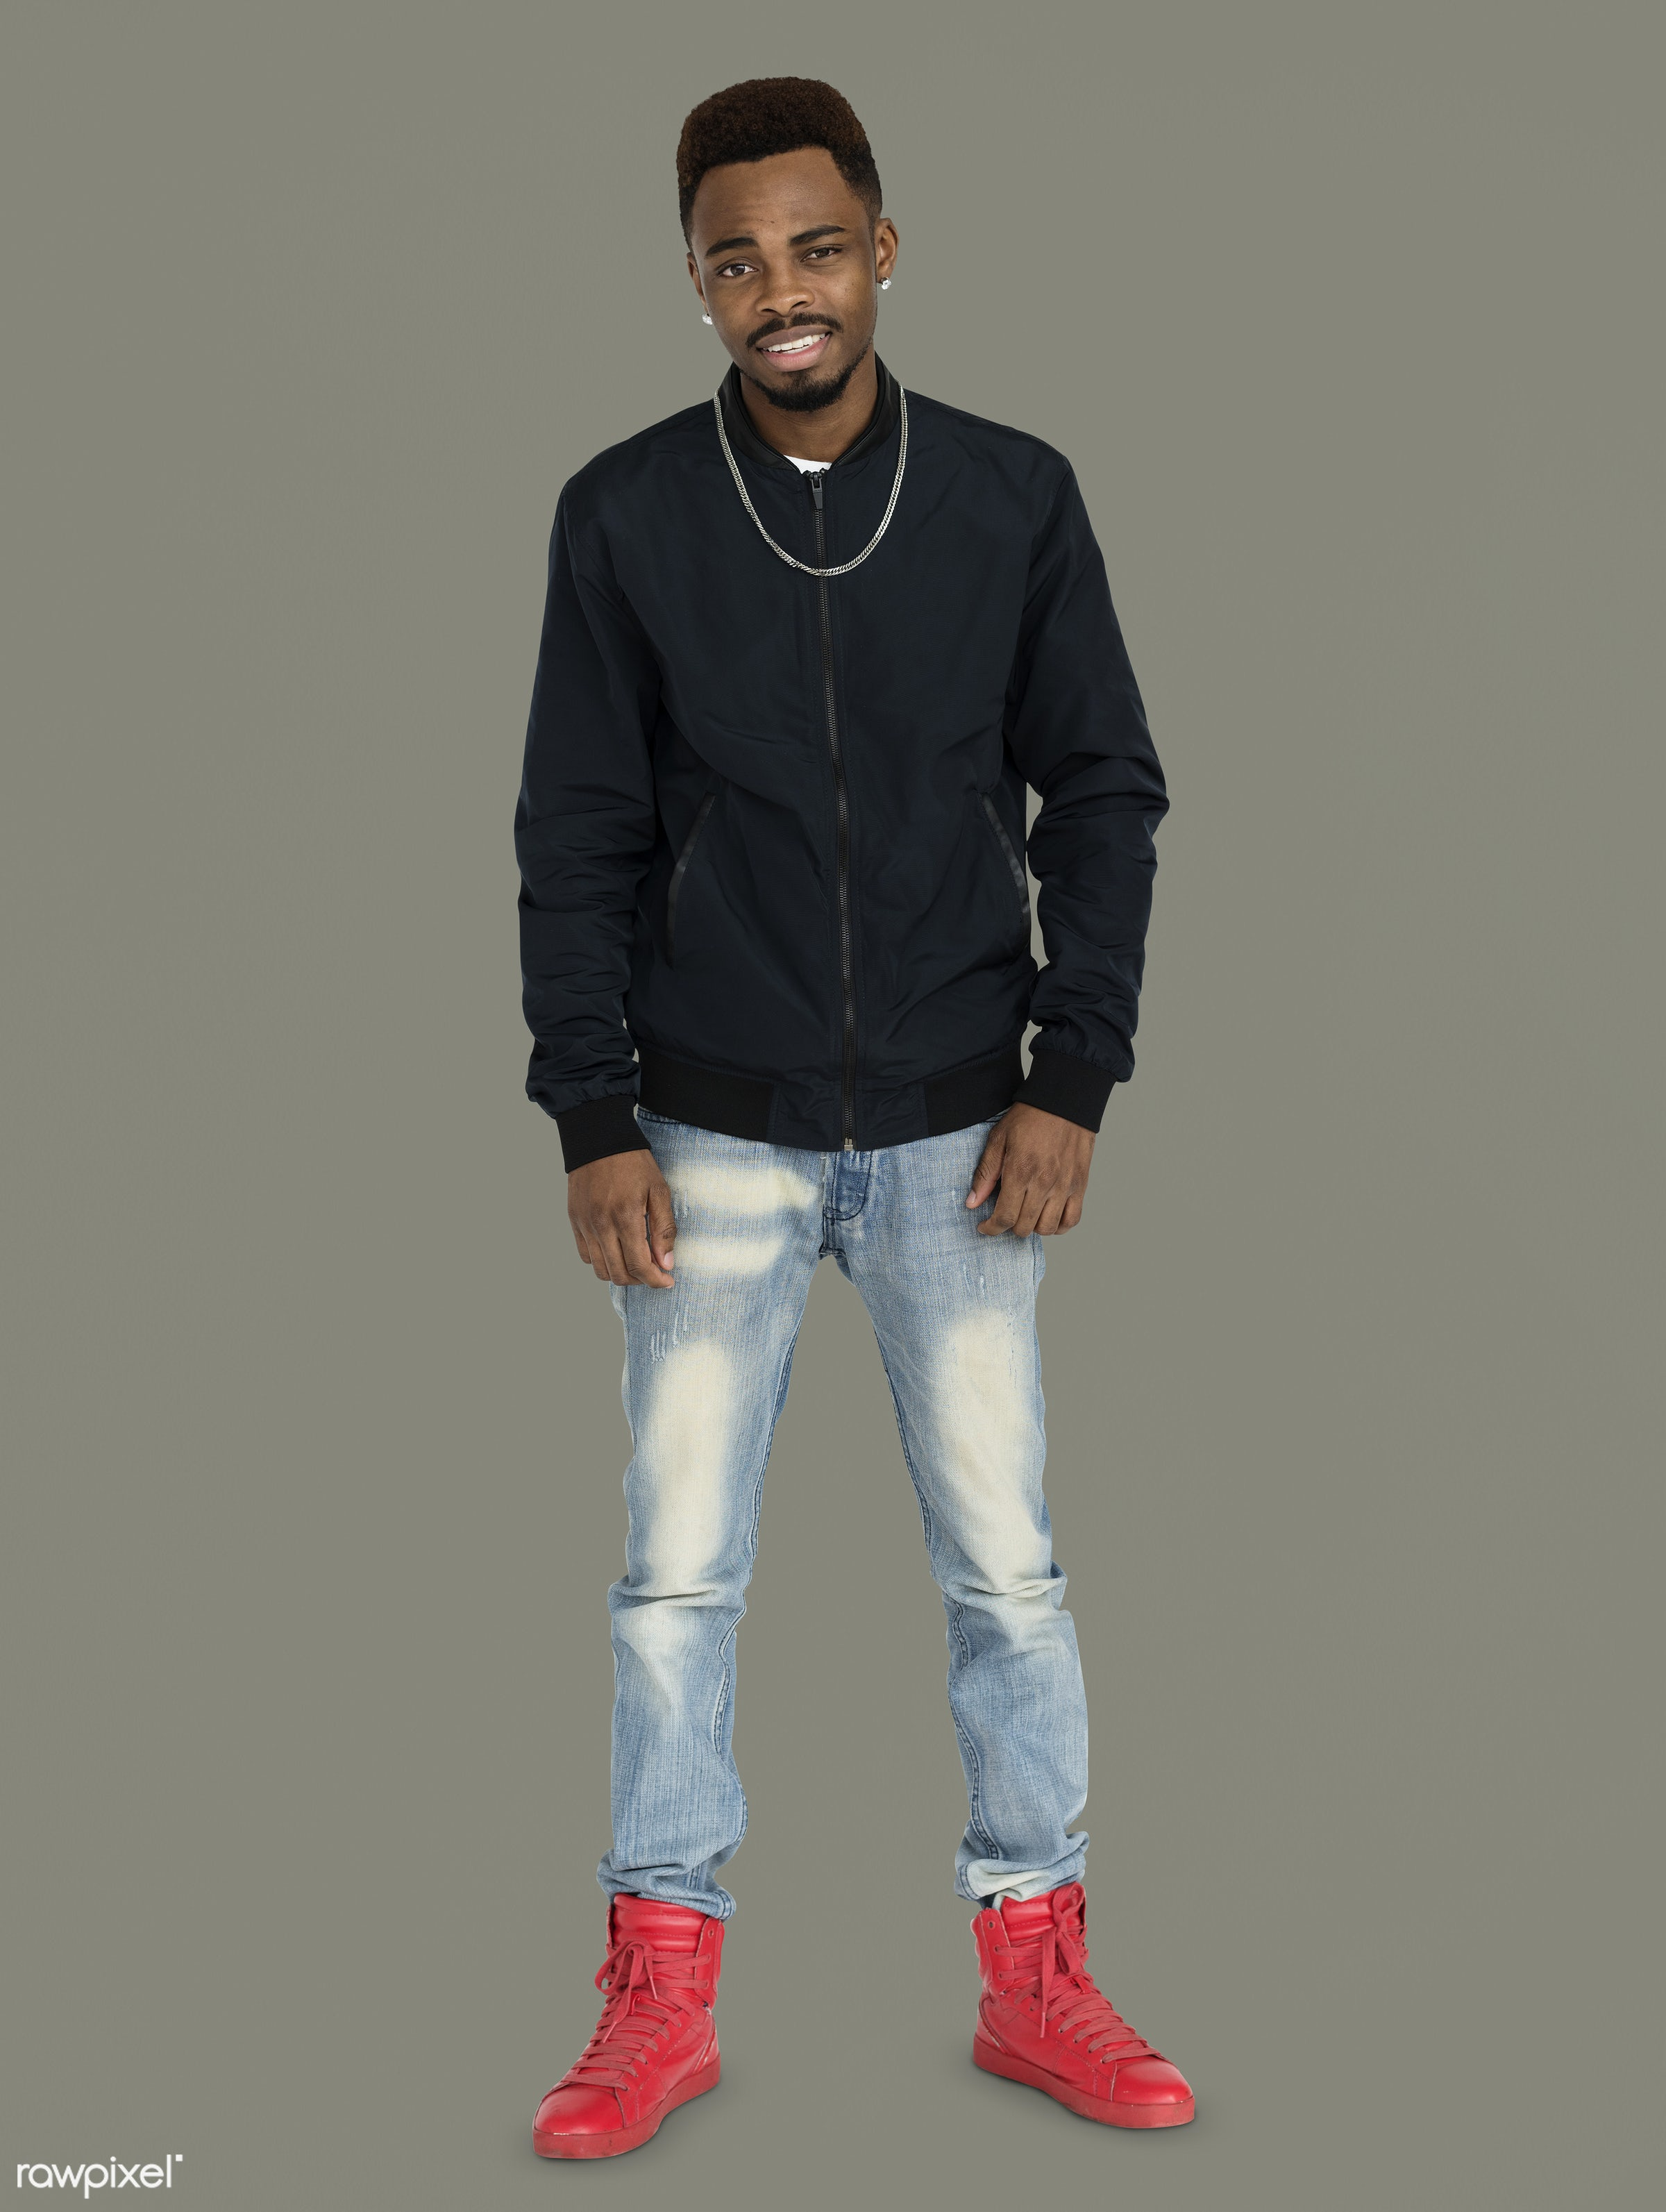 studio, expression, face, person, joy, people, style, solo, fresh, happy, casual, grey, smile, cheerful, man, smiling, black...